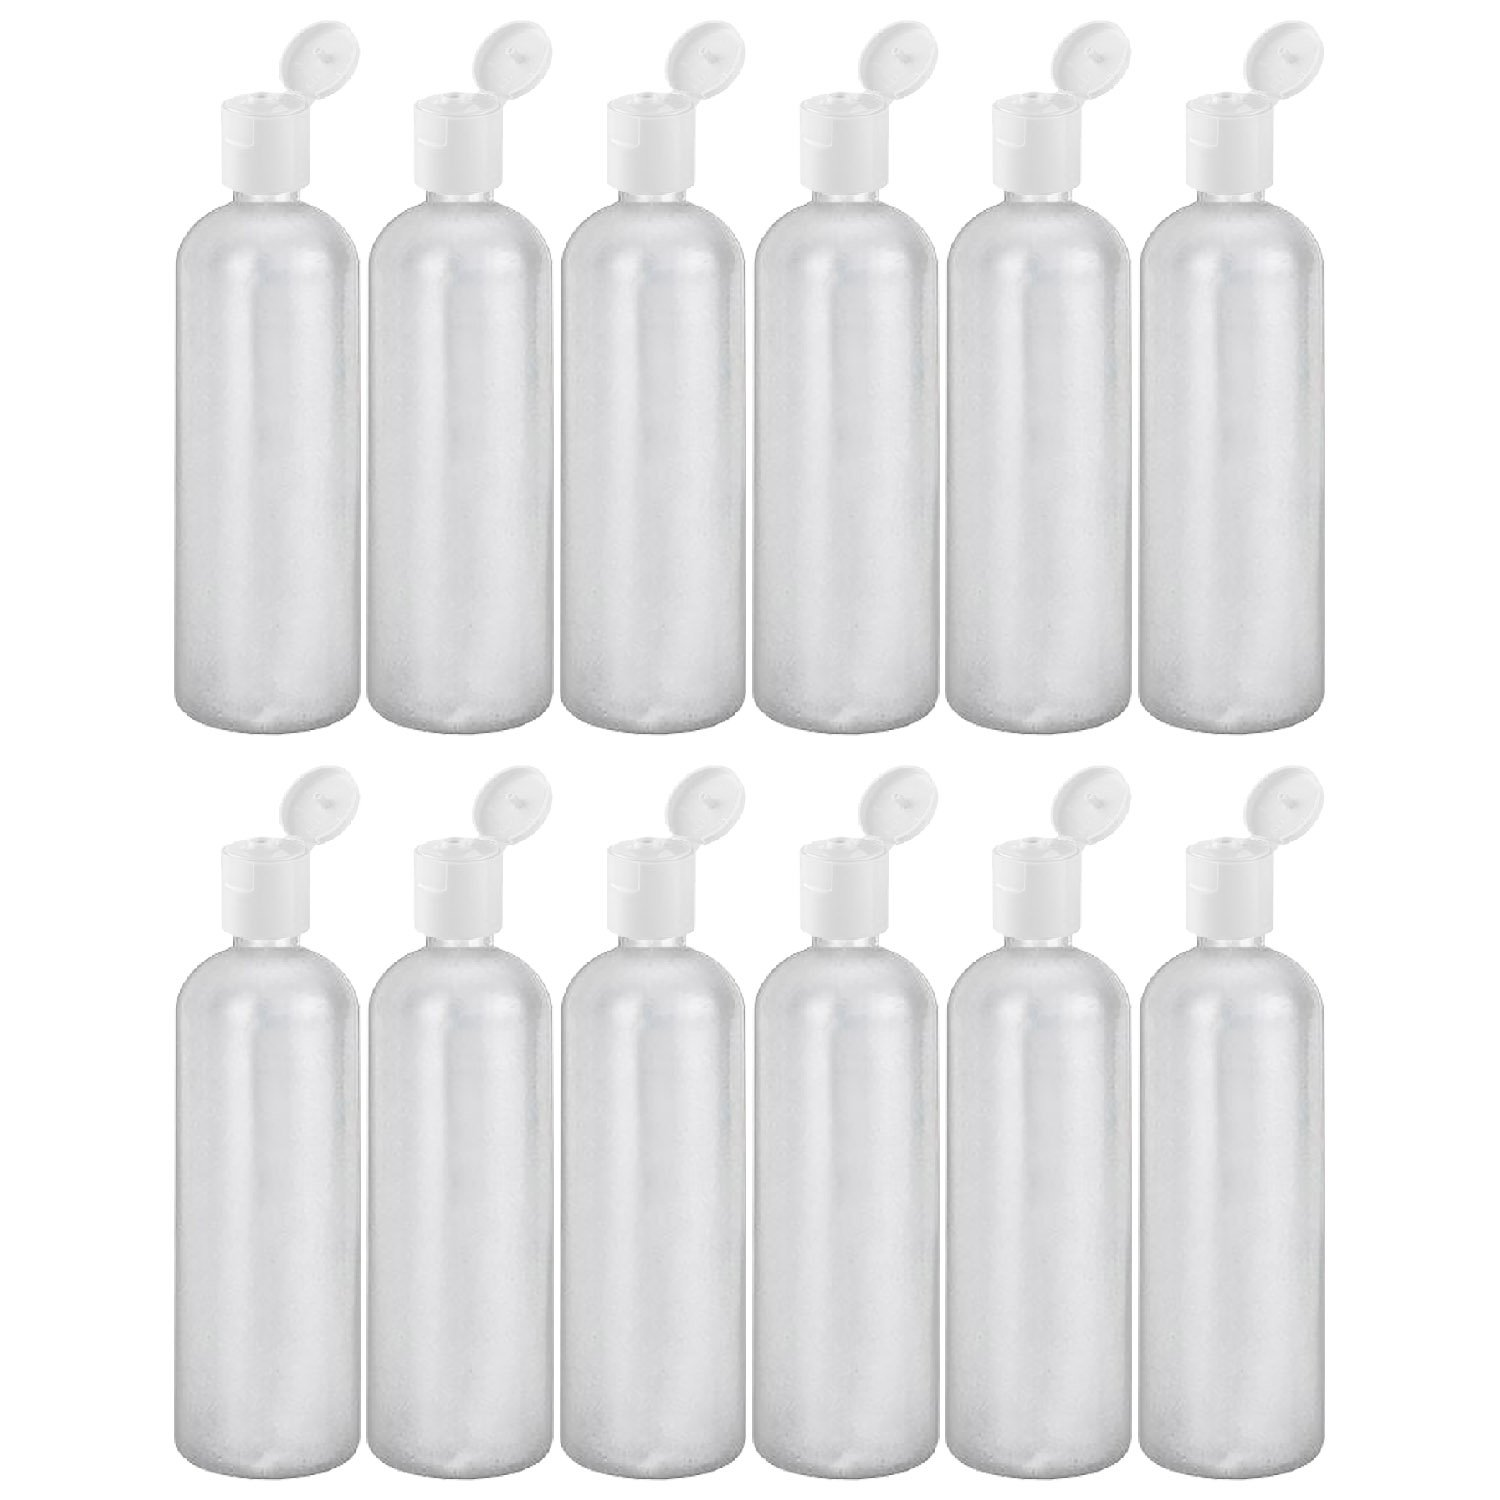 MoYo Natural Labs 32 oz Refillable Bottles, Empty Travel Containers with Flip Caps, BPA Free HDPE Plastic Squeezable Toiletry Cosmetics Bottle Pack of 12, HDPE Translucent White